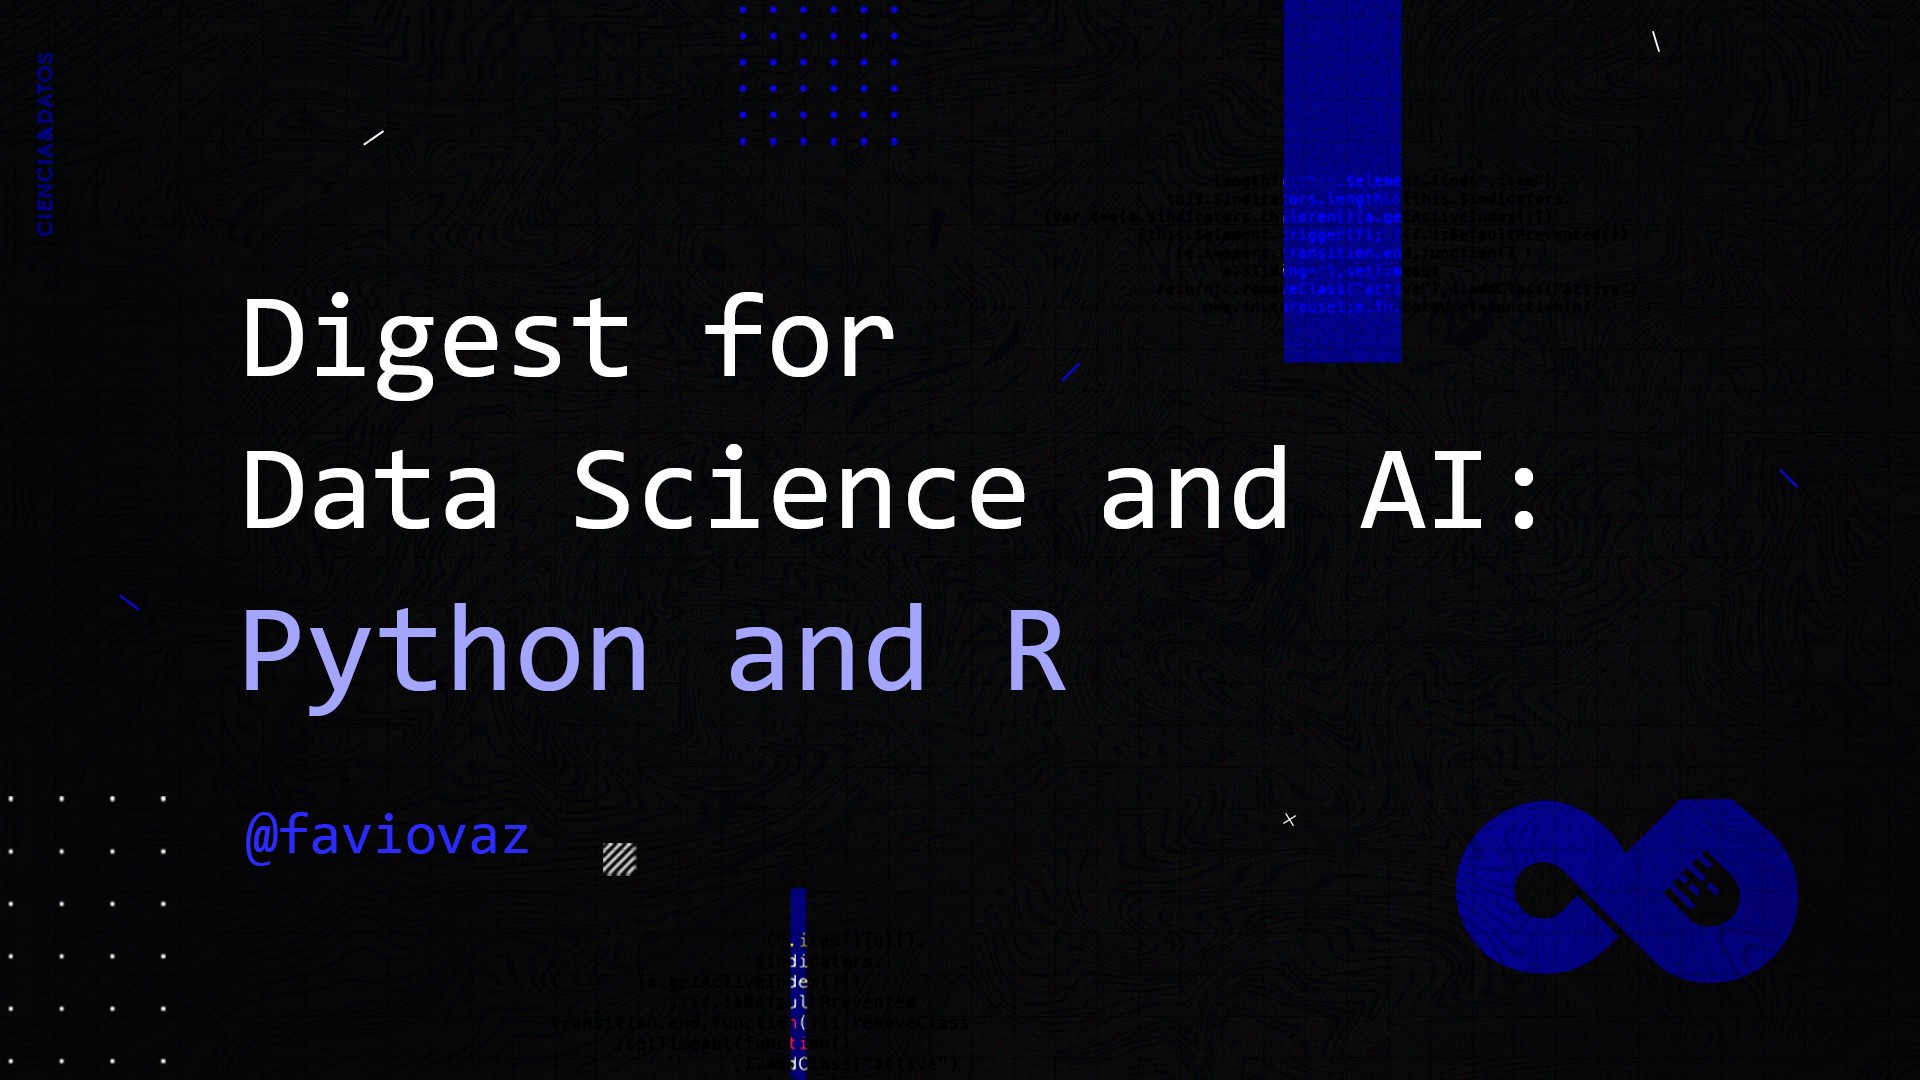 Weekly Digest for Data Science and AI: Python and R (Volume 19)